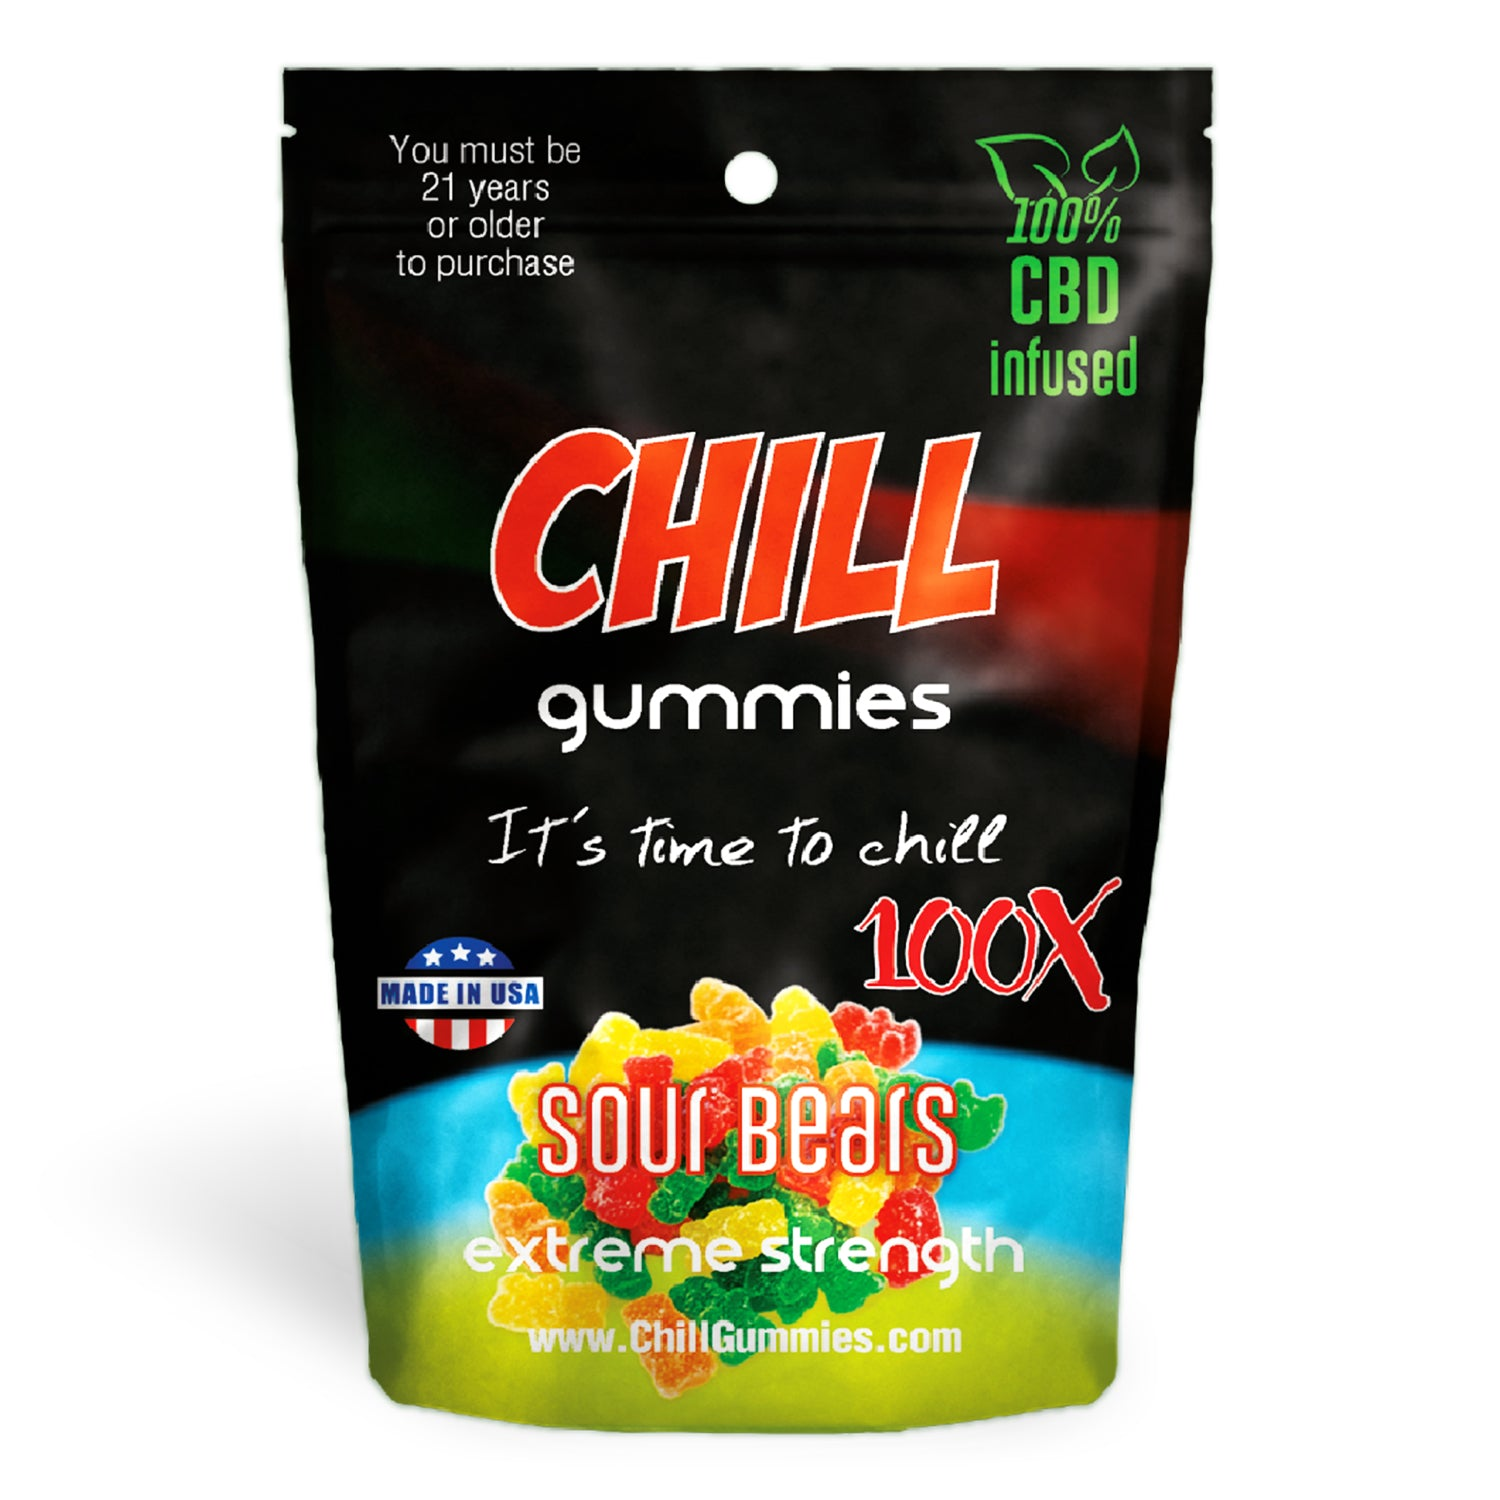 Chill Gummies - CBD Infused Sour Bears [Edible Candy] - My CBD Mall